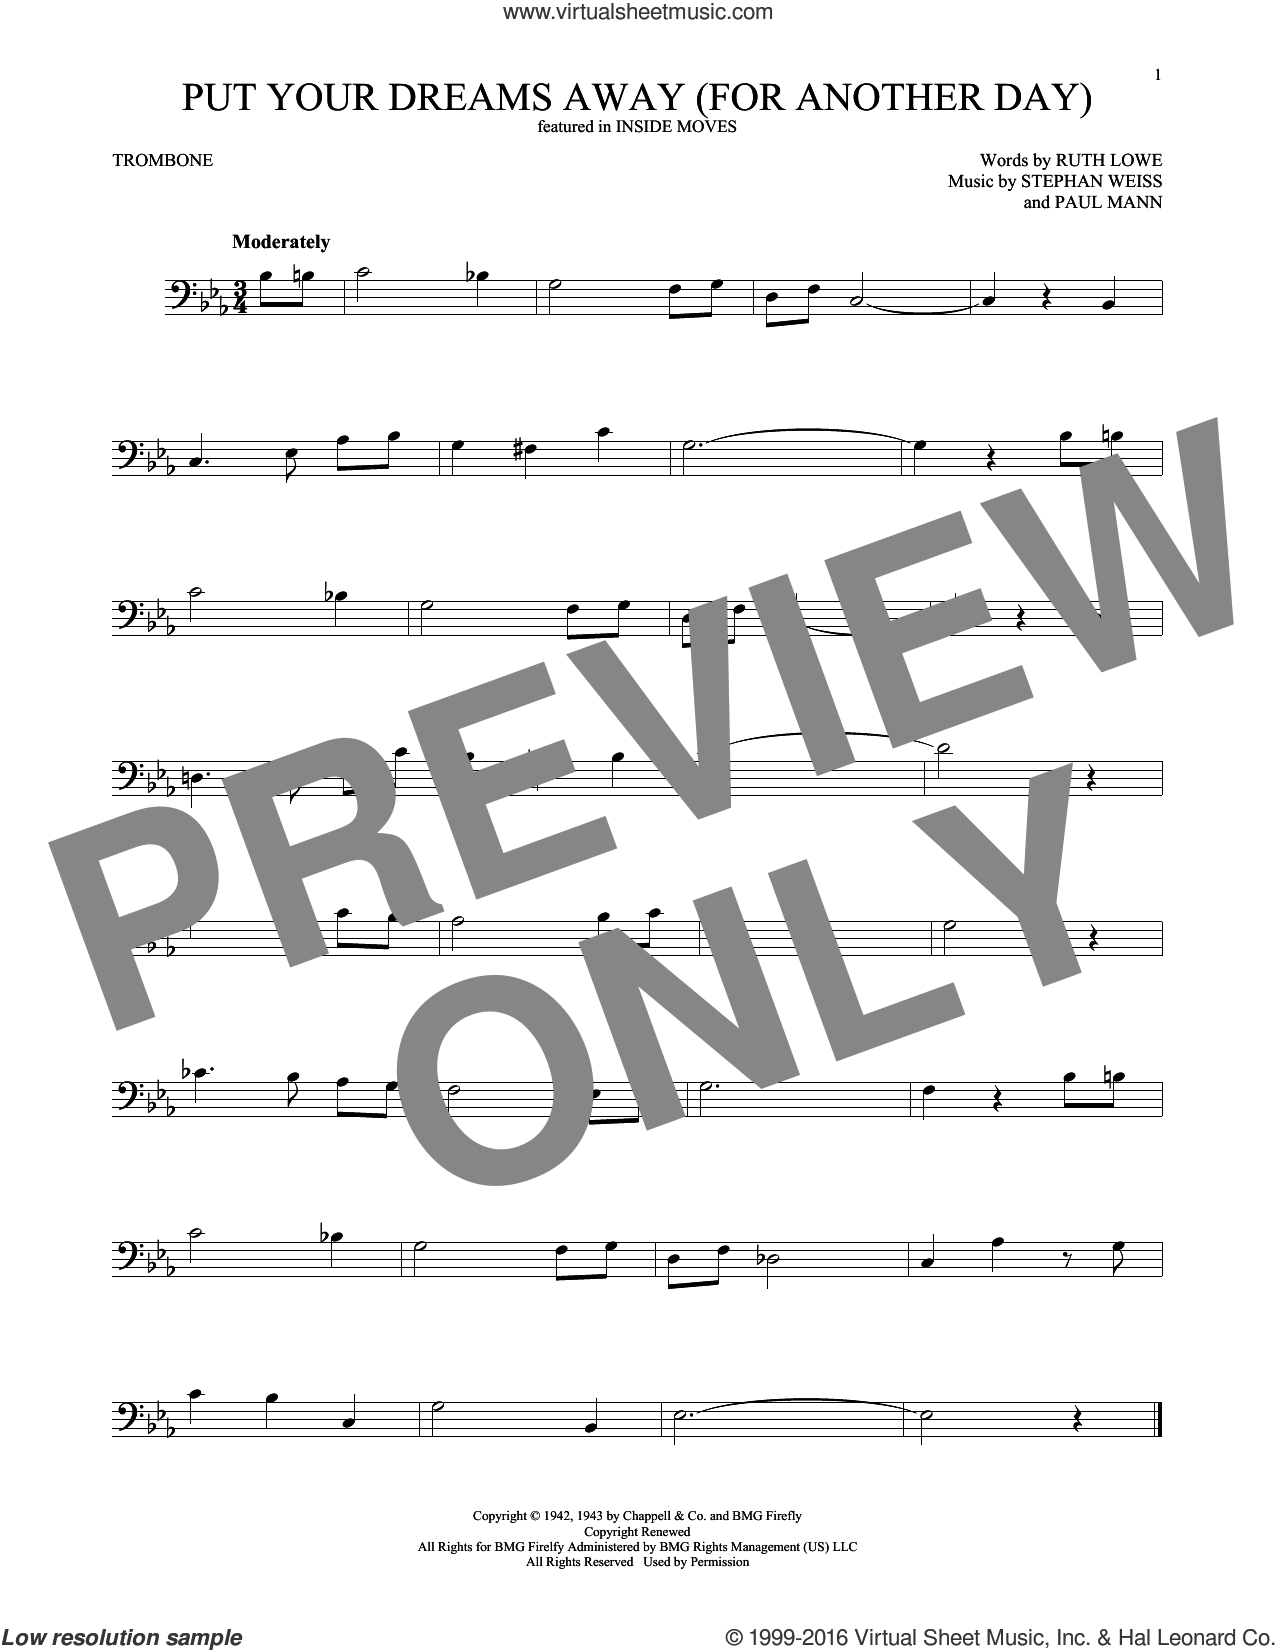 Put Your Dreams Away (For Another Day) sheet music for trombone solo by Frank Sinatra, Paul Mann, Ruth Lowe and Stephen Weiss, intermediate skill level